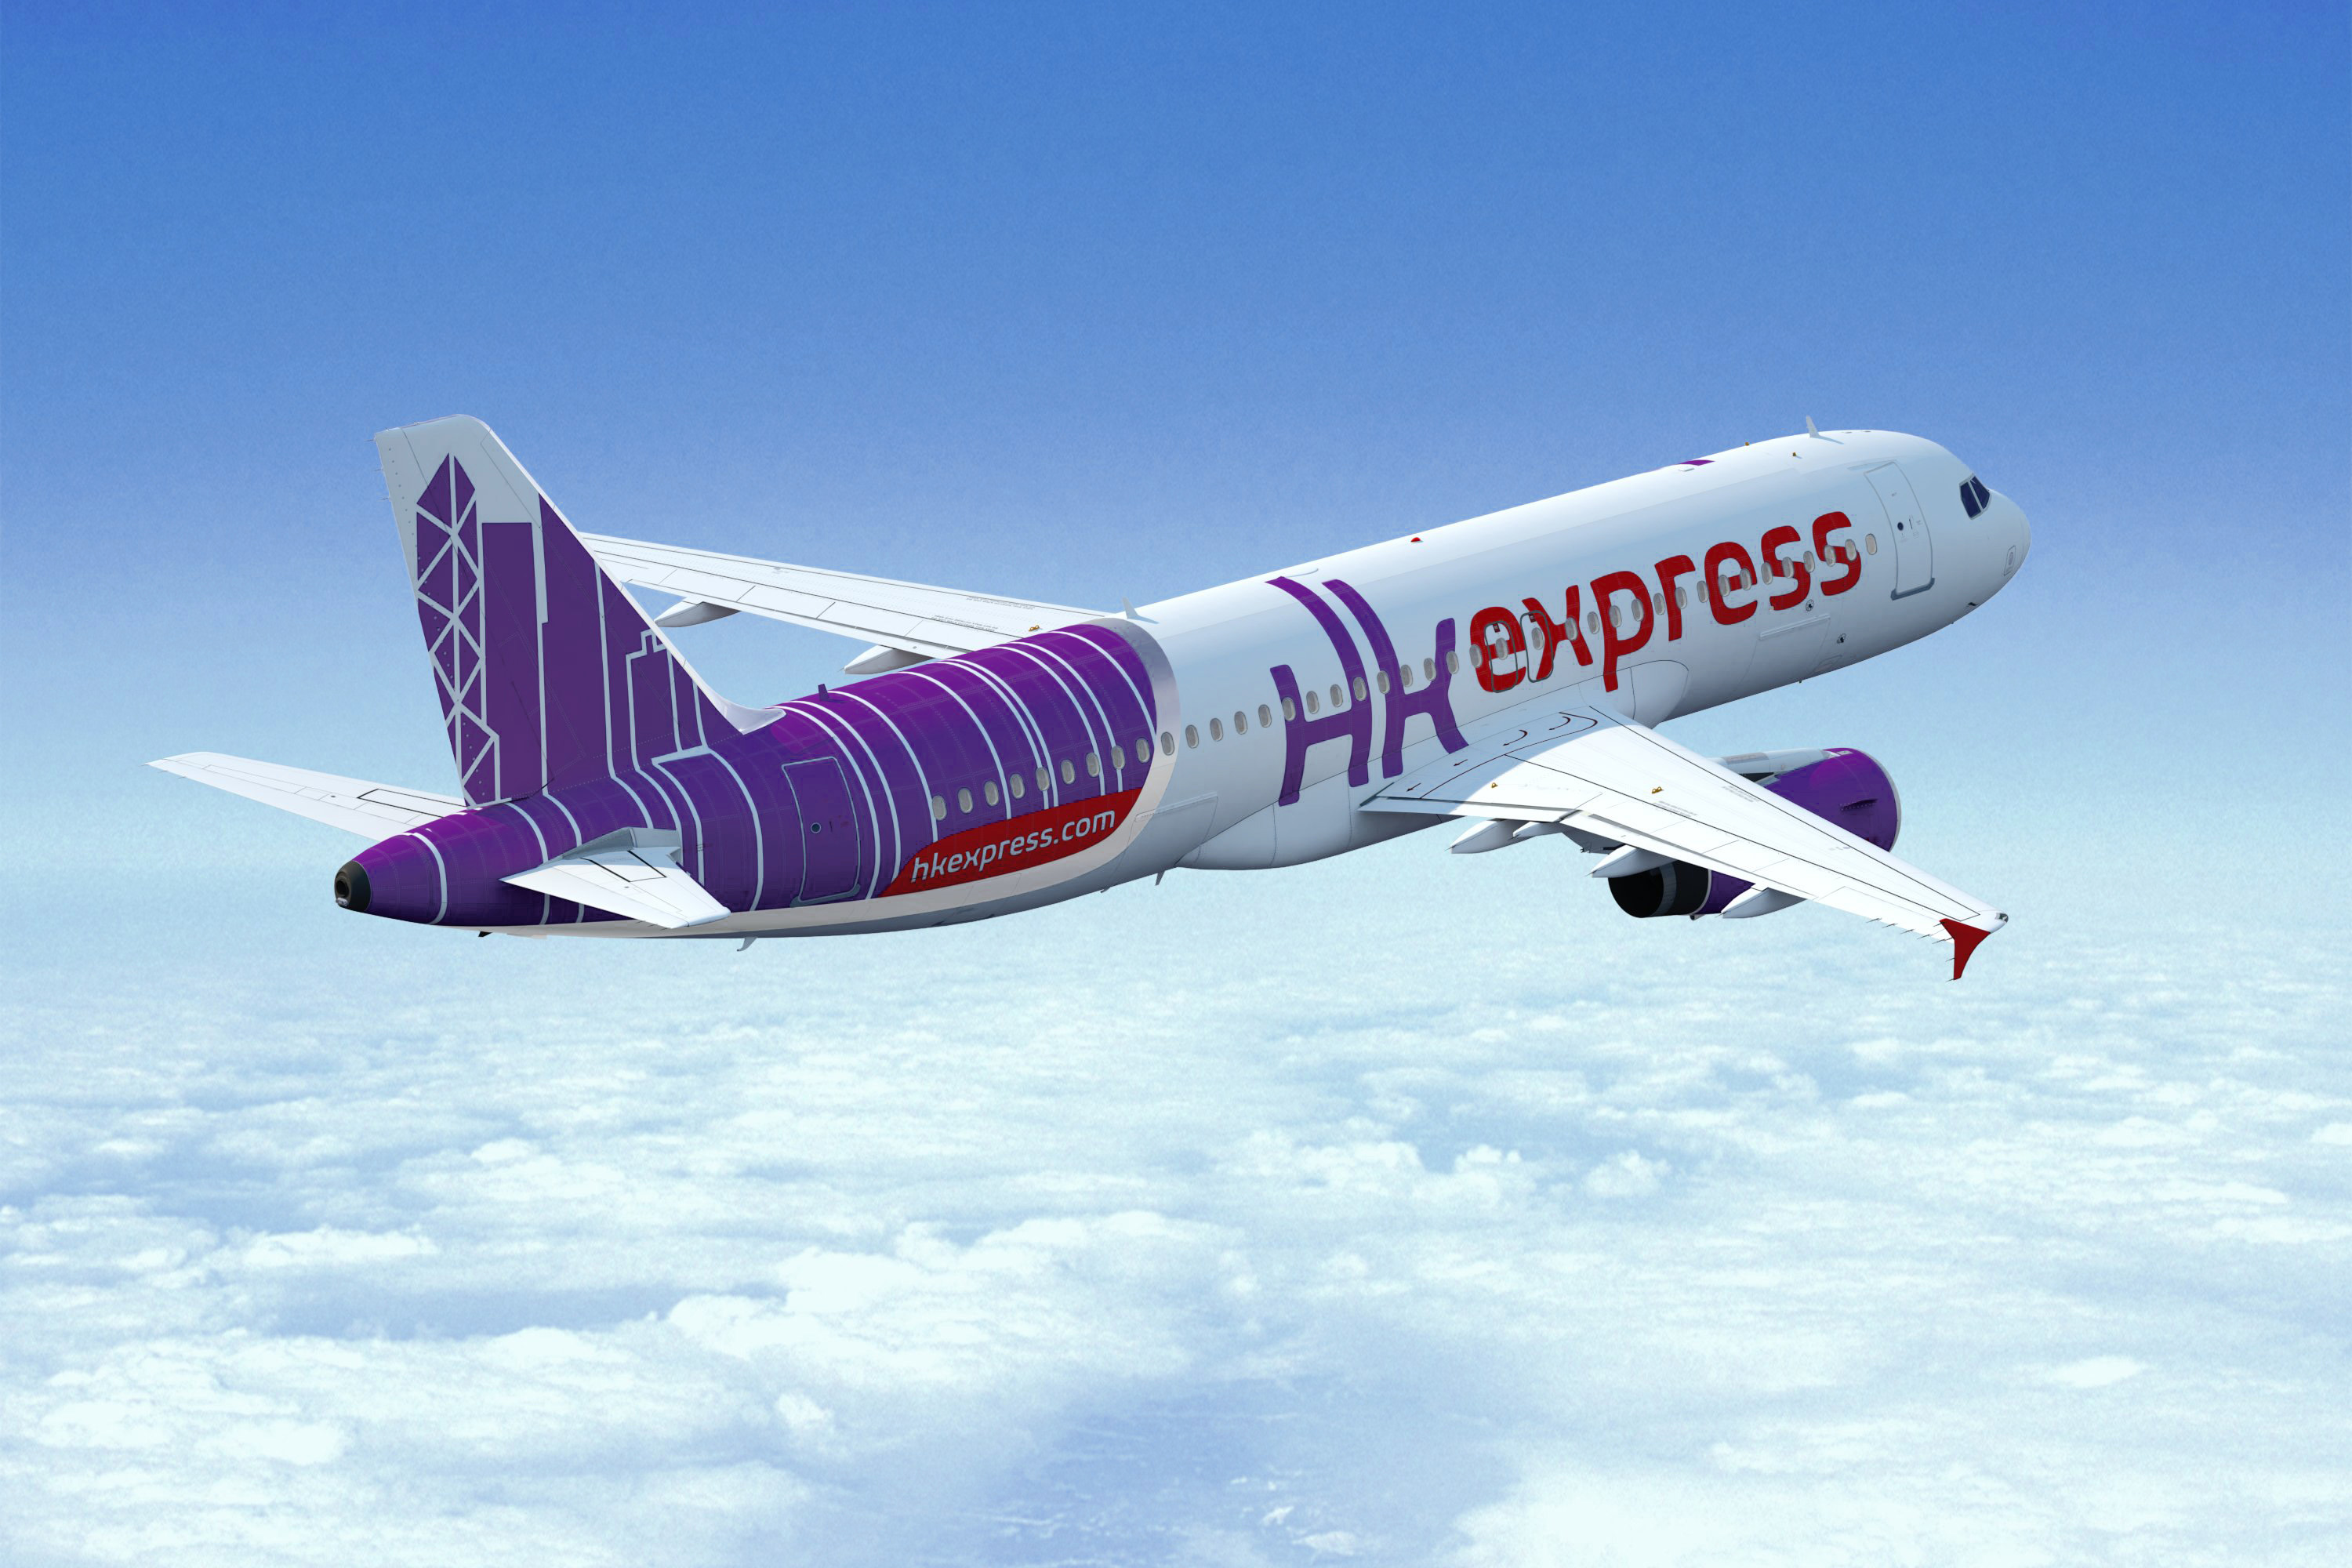 Kintetsu World Express HK Ltd